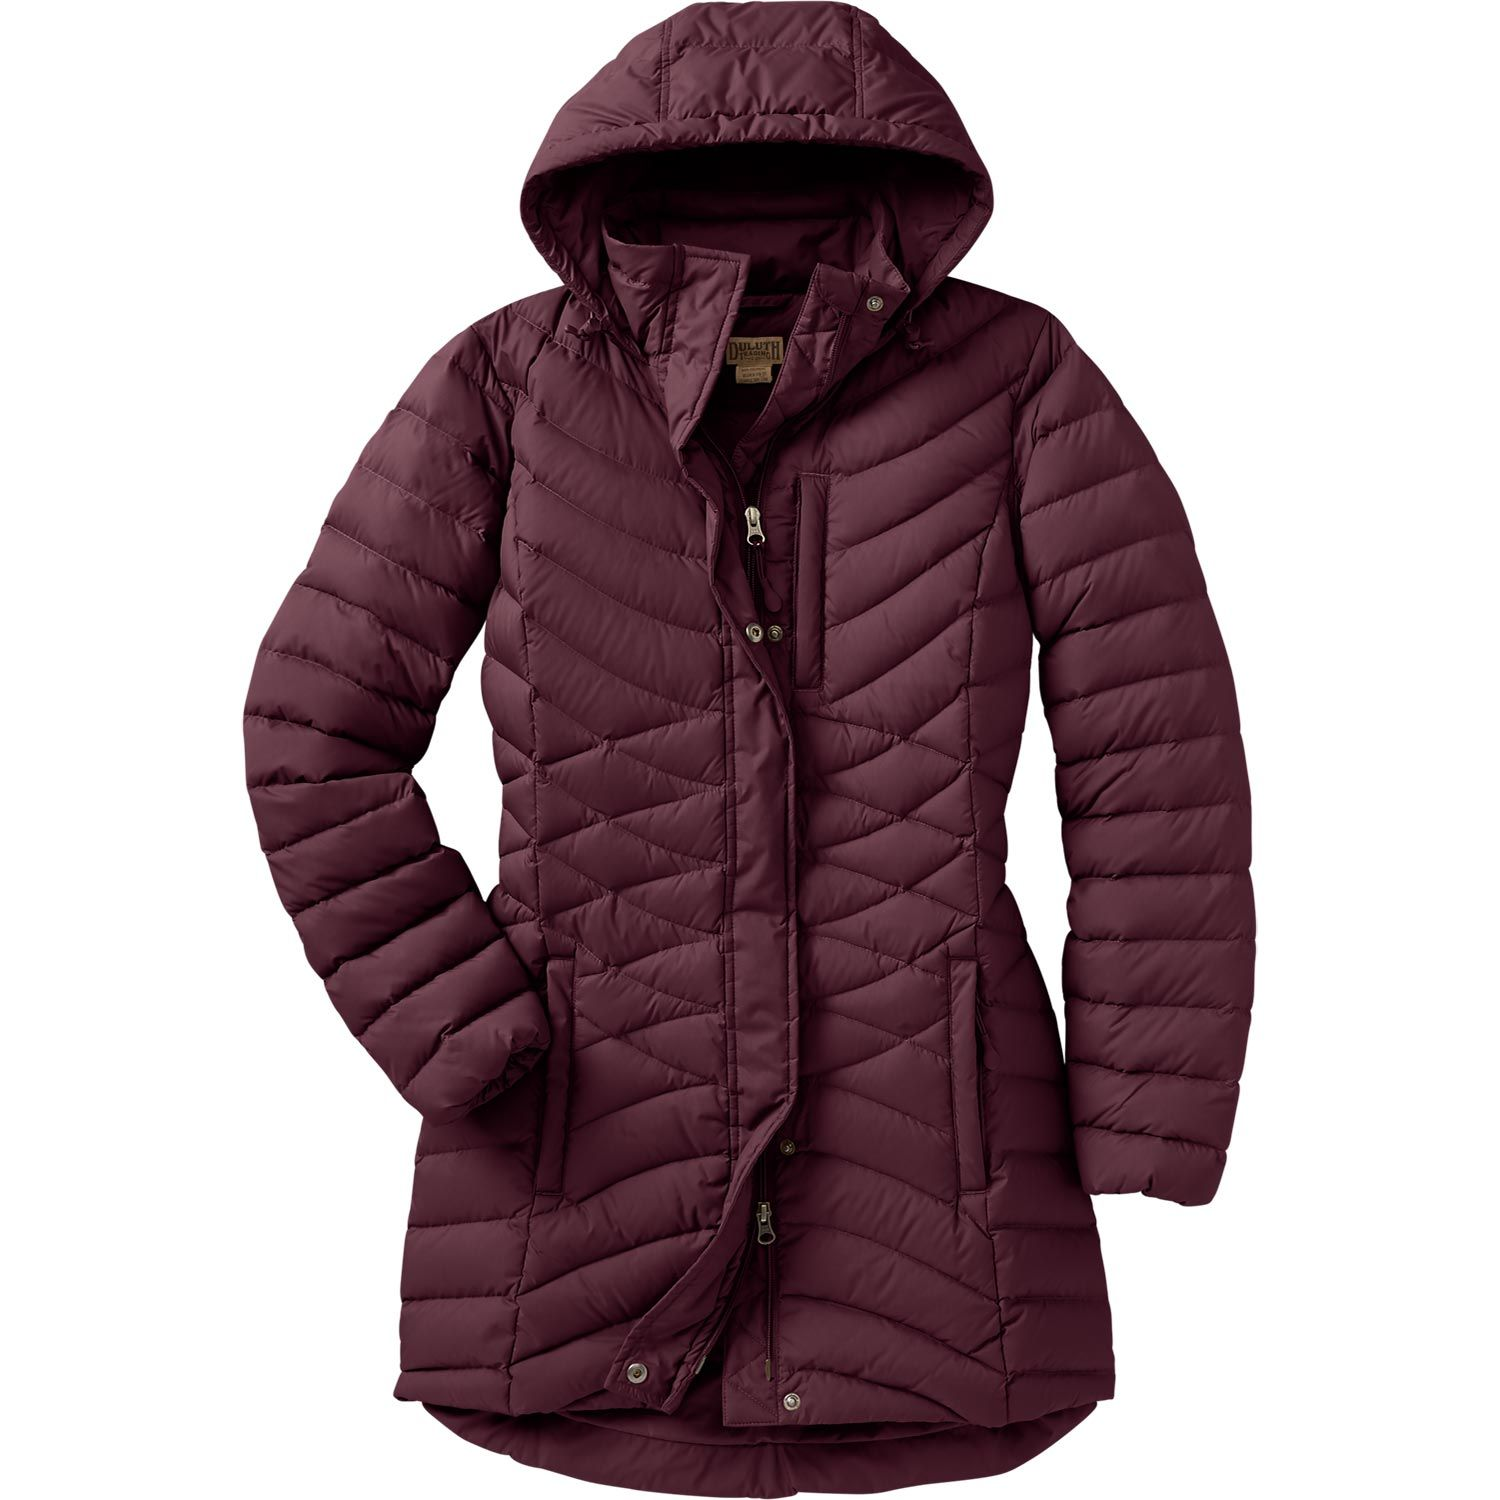 cb808503de6f Our Cold Faithful 800 Fill Power Duck Down Coat is super lightweight yet  insulates you from the nastiest of chills. Plus